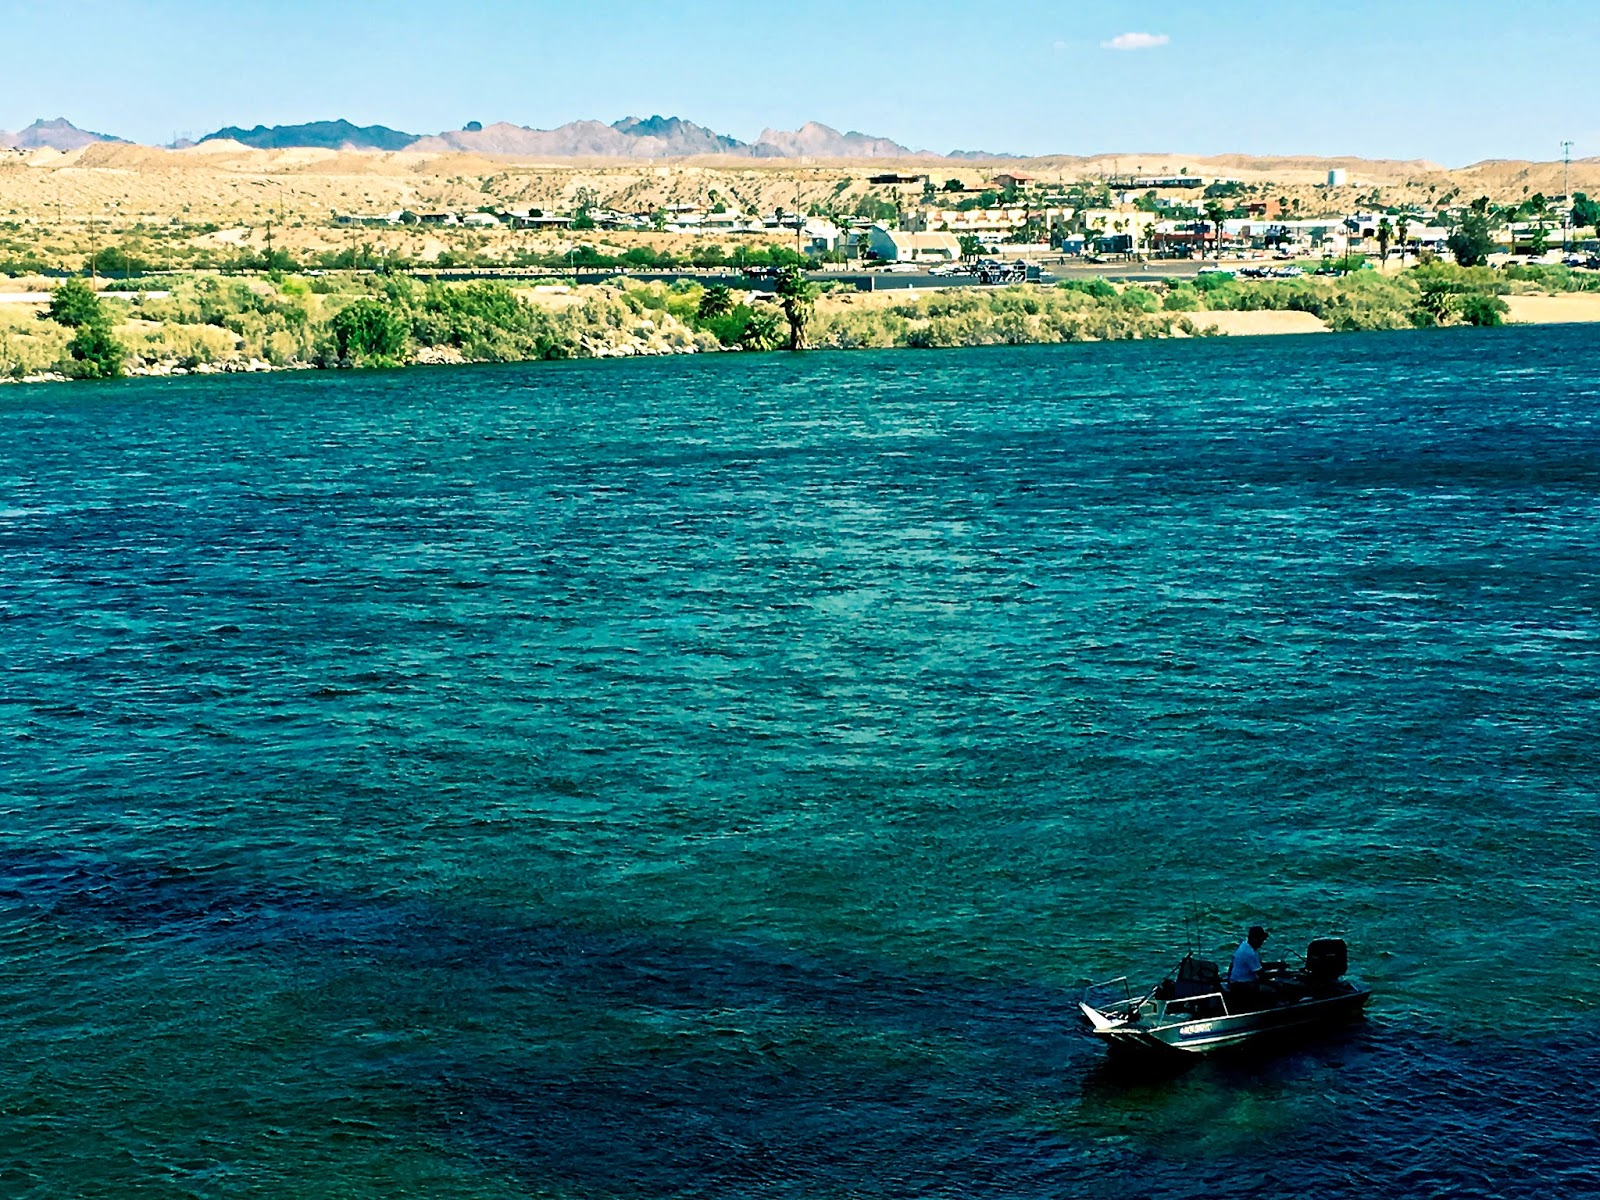 Laughlin buzz southern nevada fishing reports may 2017 for Willow beach fishing report